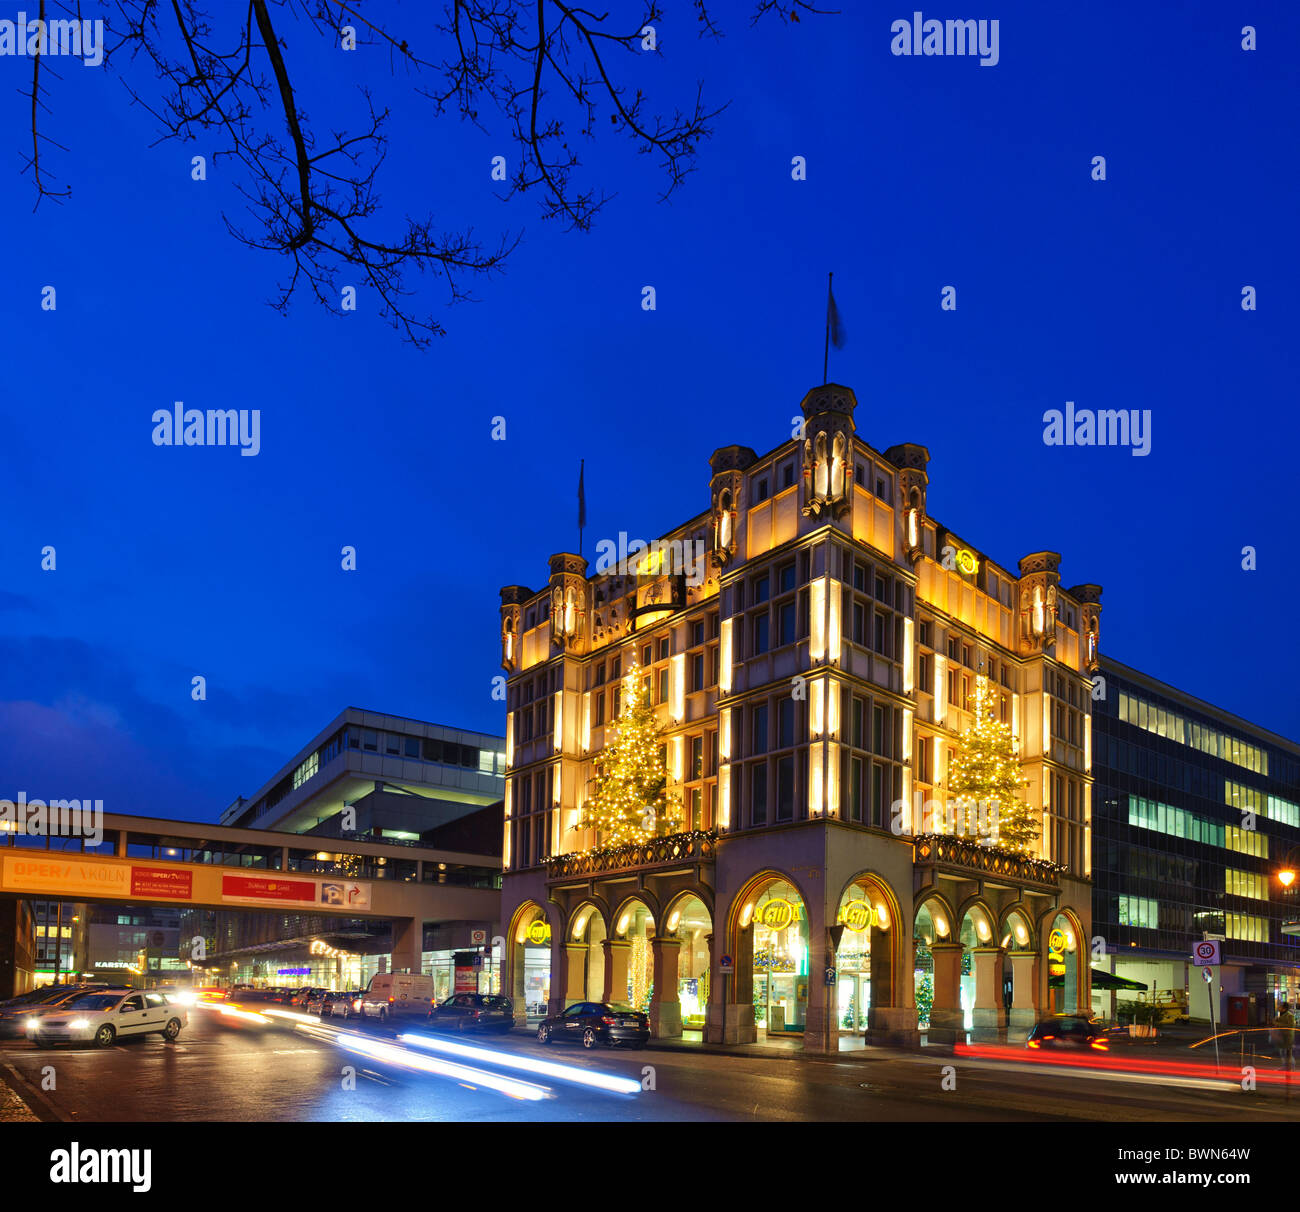 The 4711 House in Cologne with Christmas Decoration - Stock Image